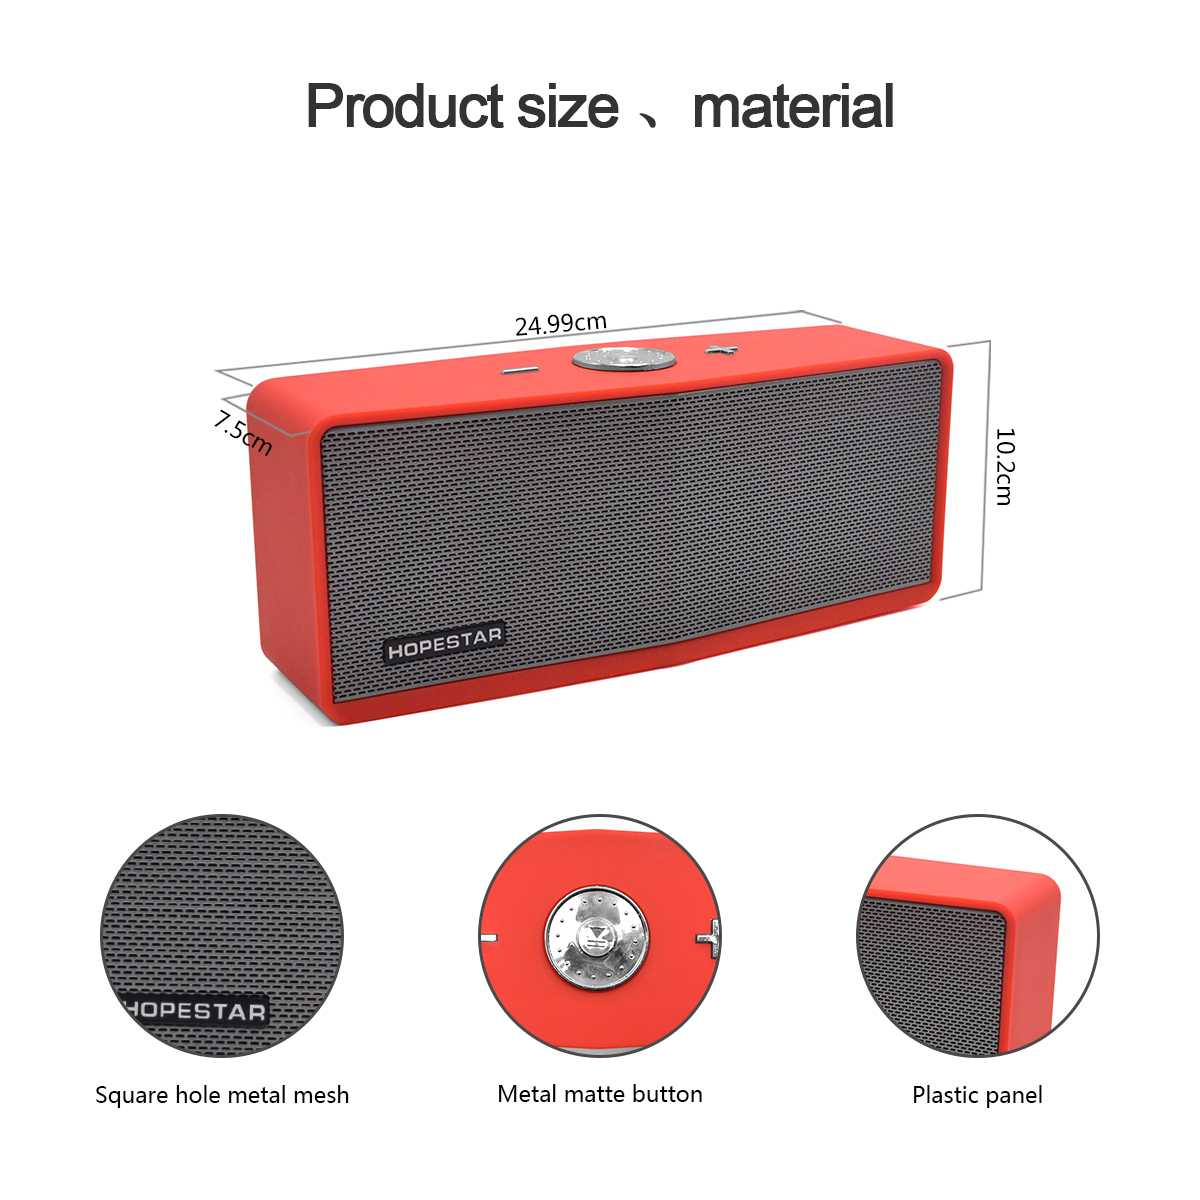 Hopestar series H6-Plus square shape 10 watt mini wireless mba bluetooth speaker with FM, Power Bank